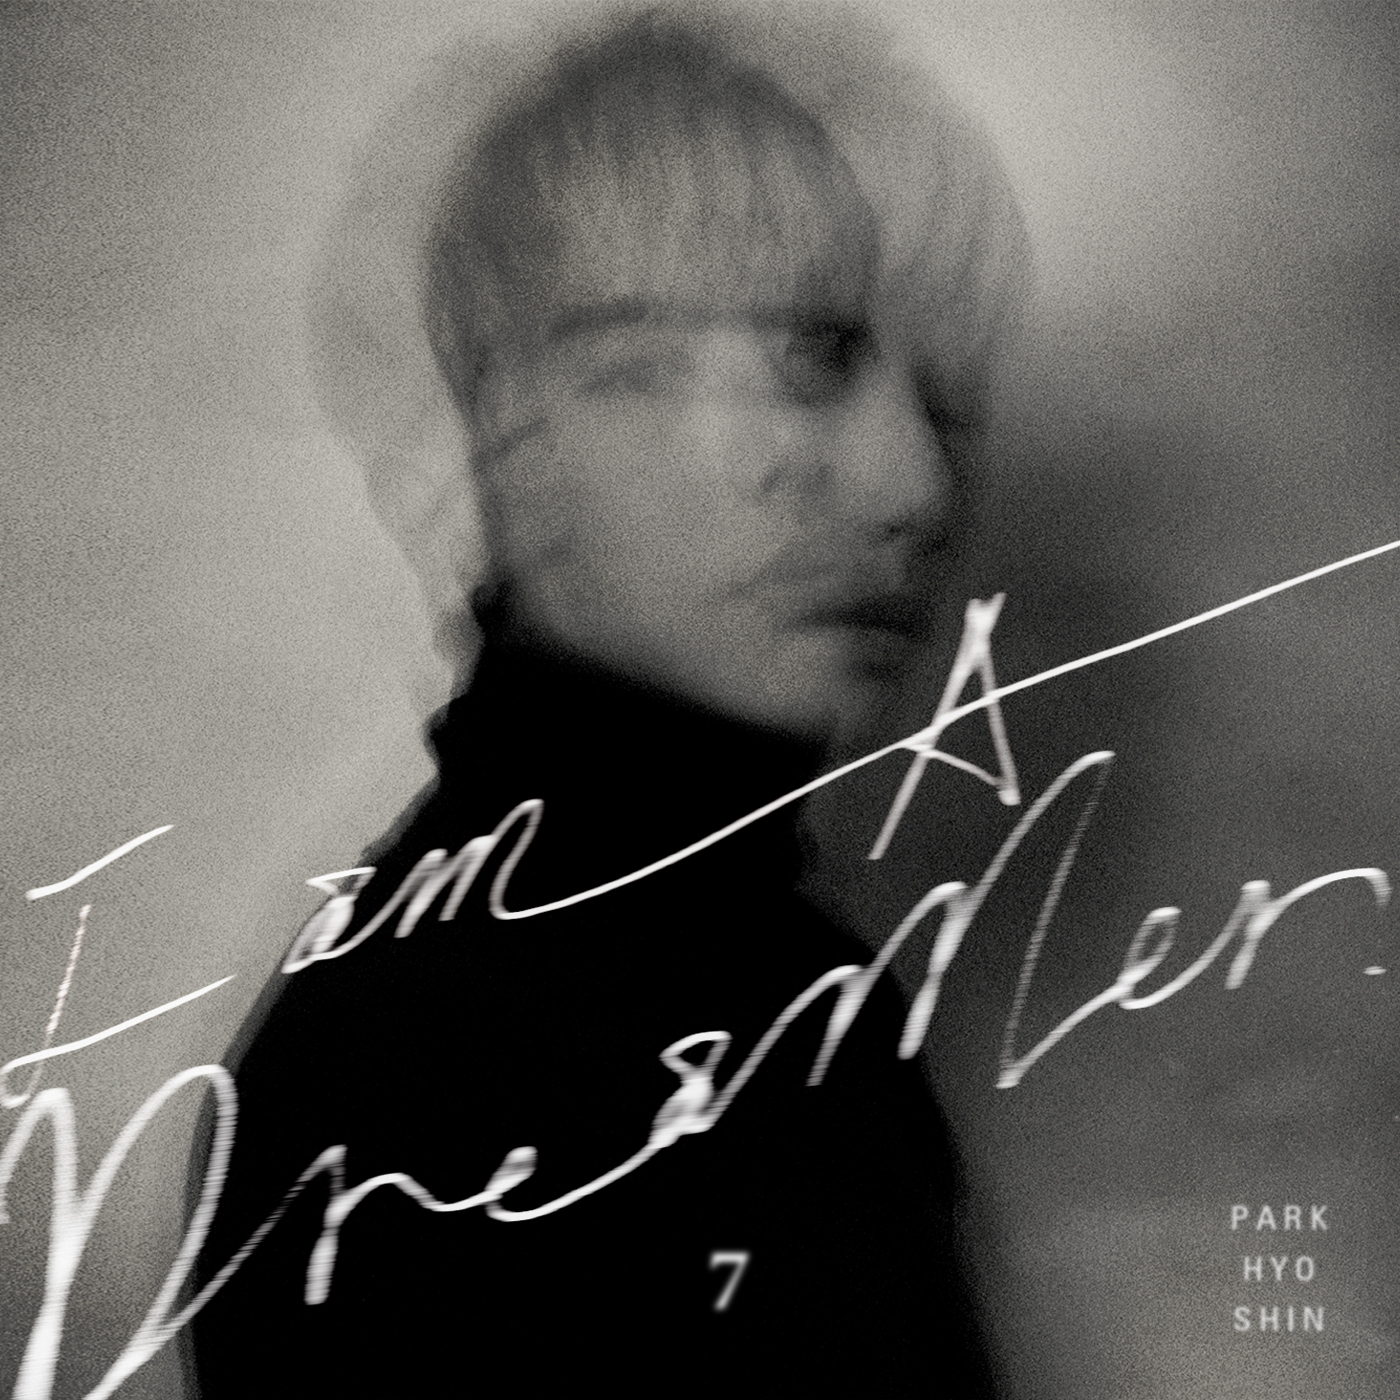 Black and grey photo of Park Hyo Shin with blurry face